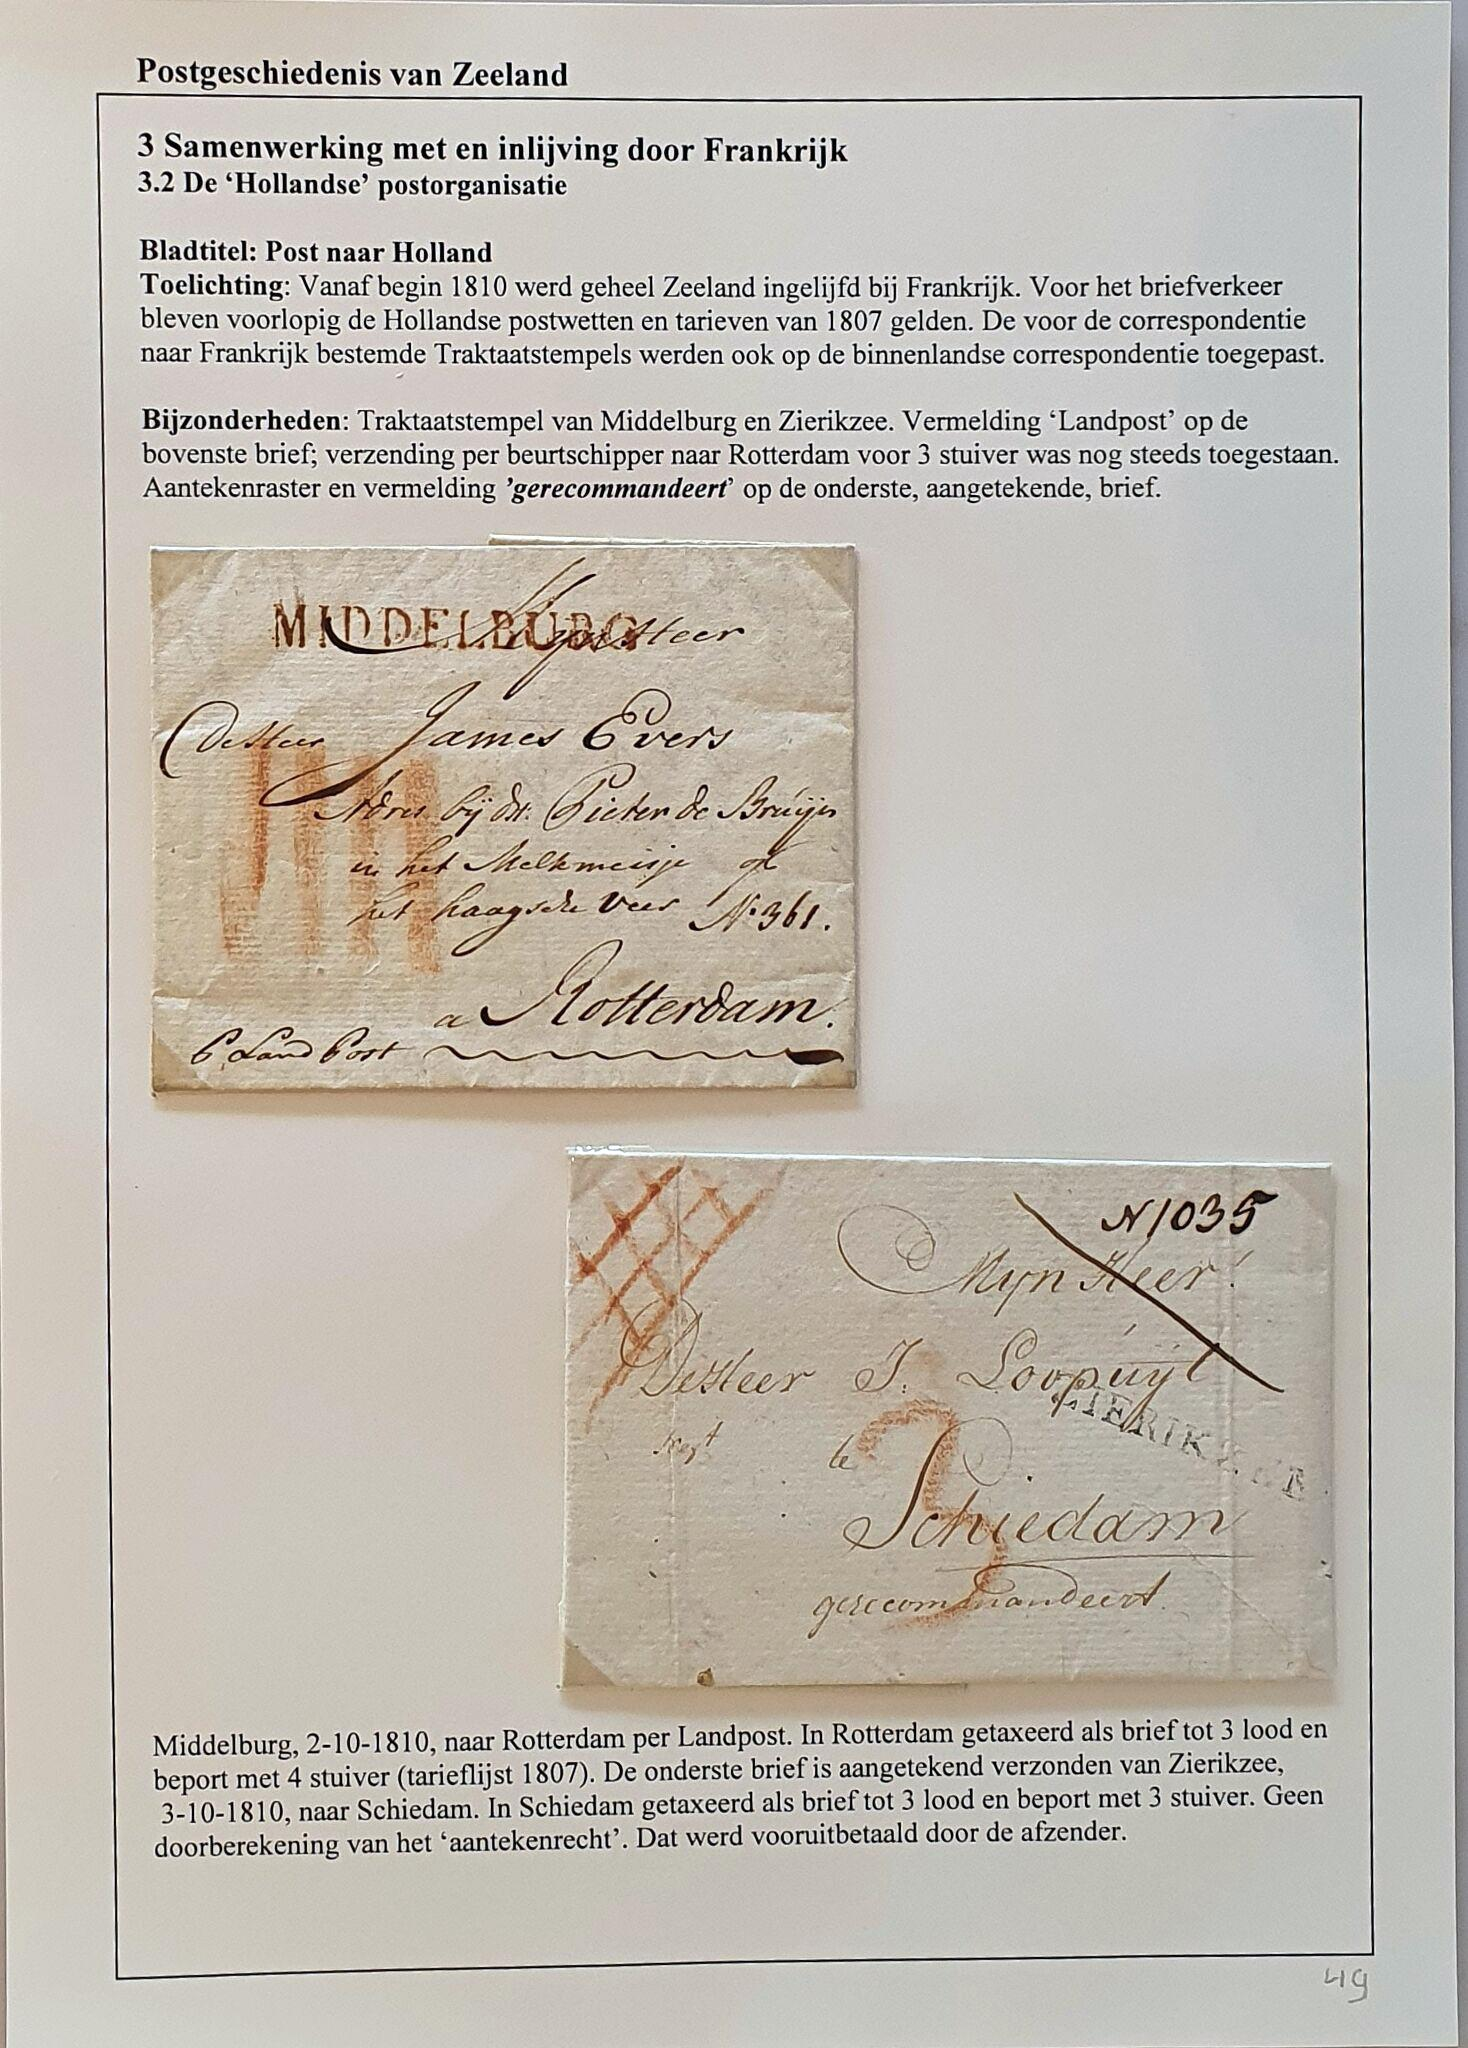 Lot 2328 - Netherlands and former colonies Netherlands -  Corinphila Veilingen Auction 250-253 - Day 3 - Netherlands and former colonies - Single lots & Picture postcards